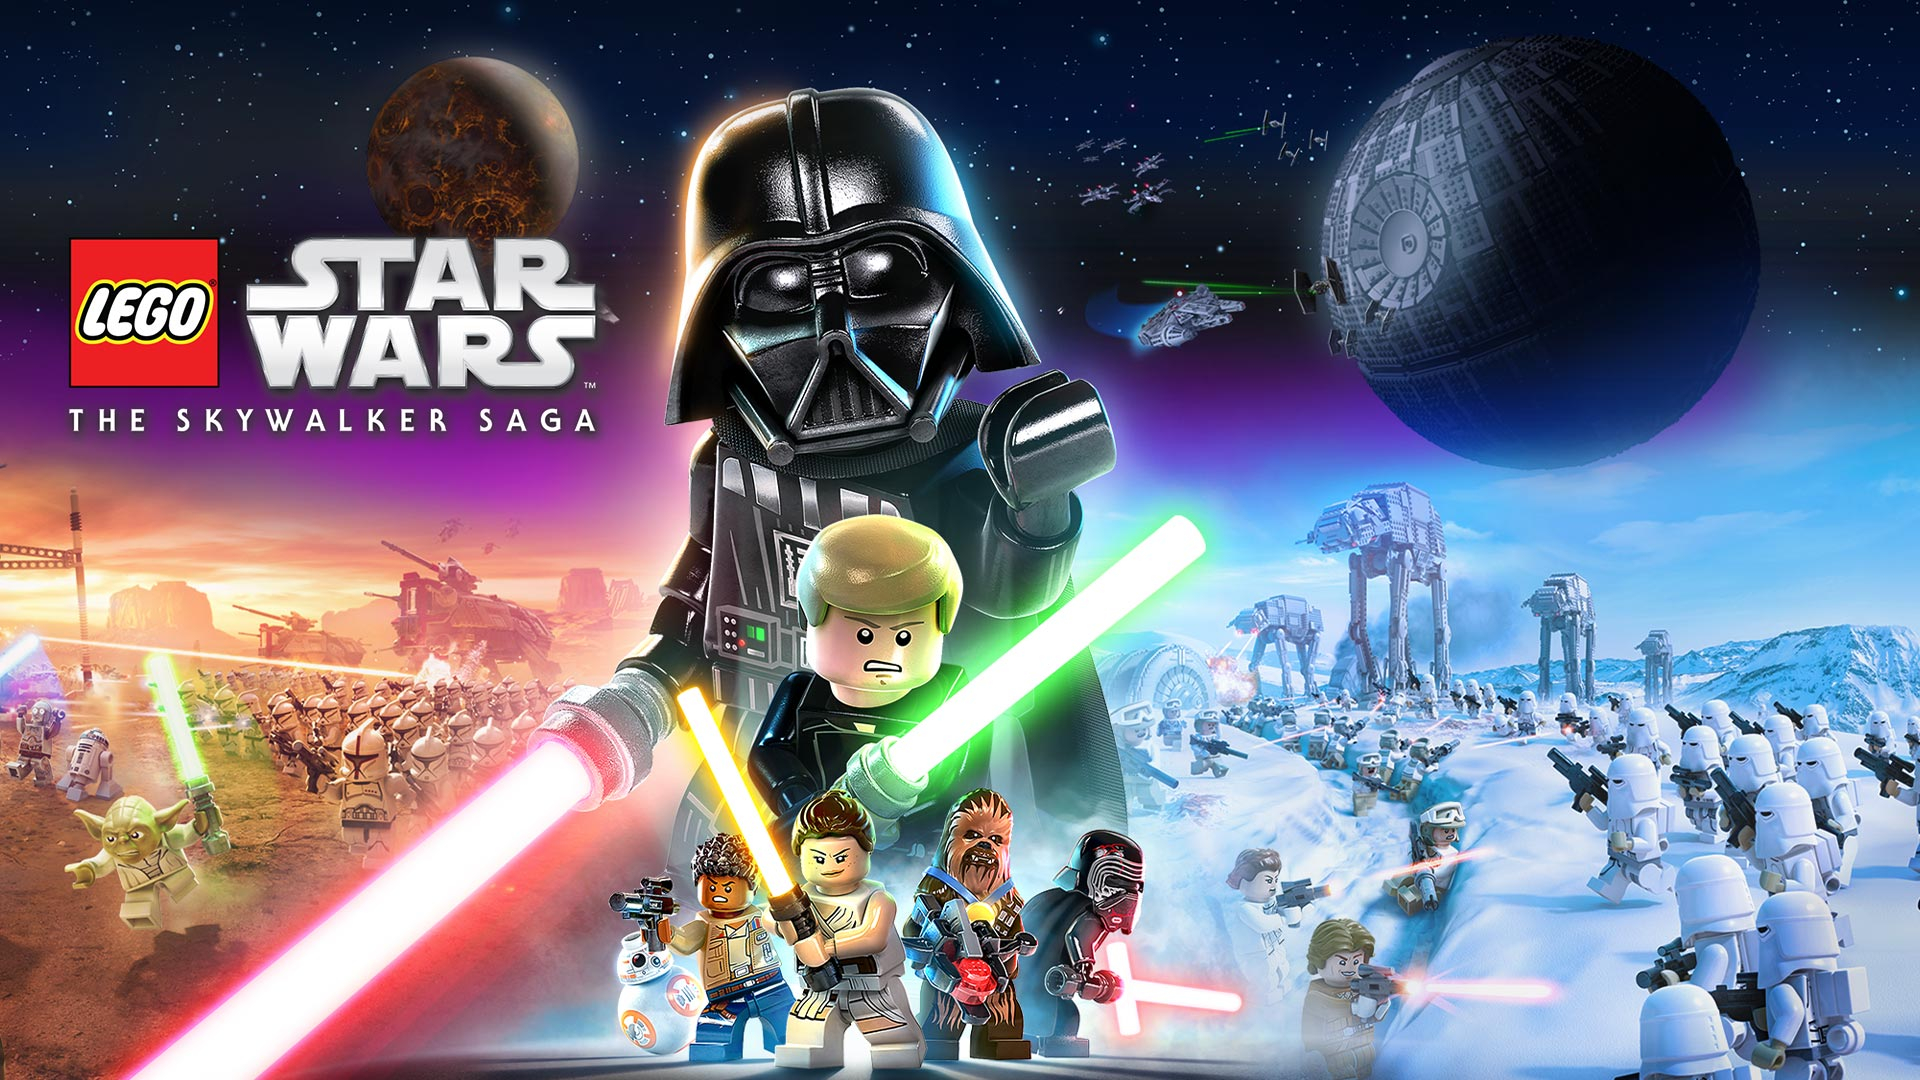 LEGO Star Wars The Skywalker Saga, A collage of characters with space battles in the background.